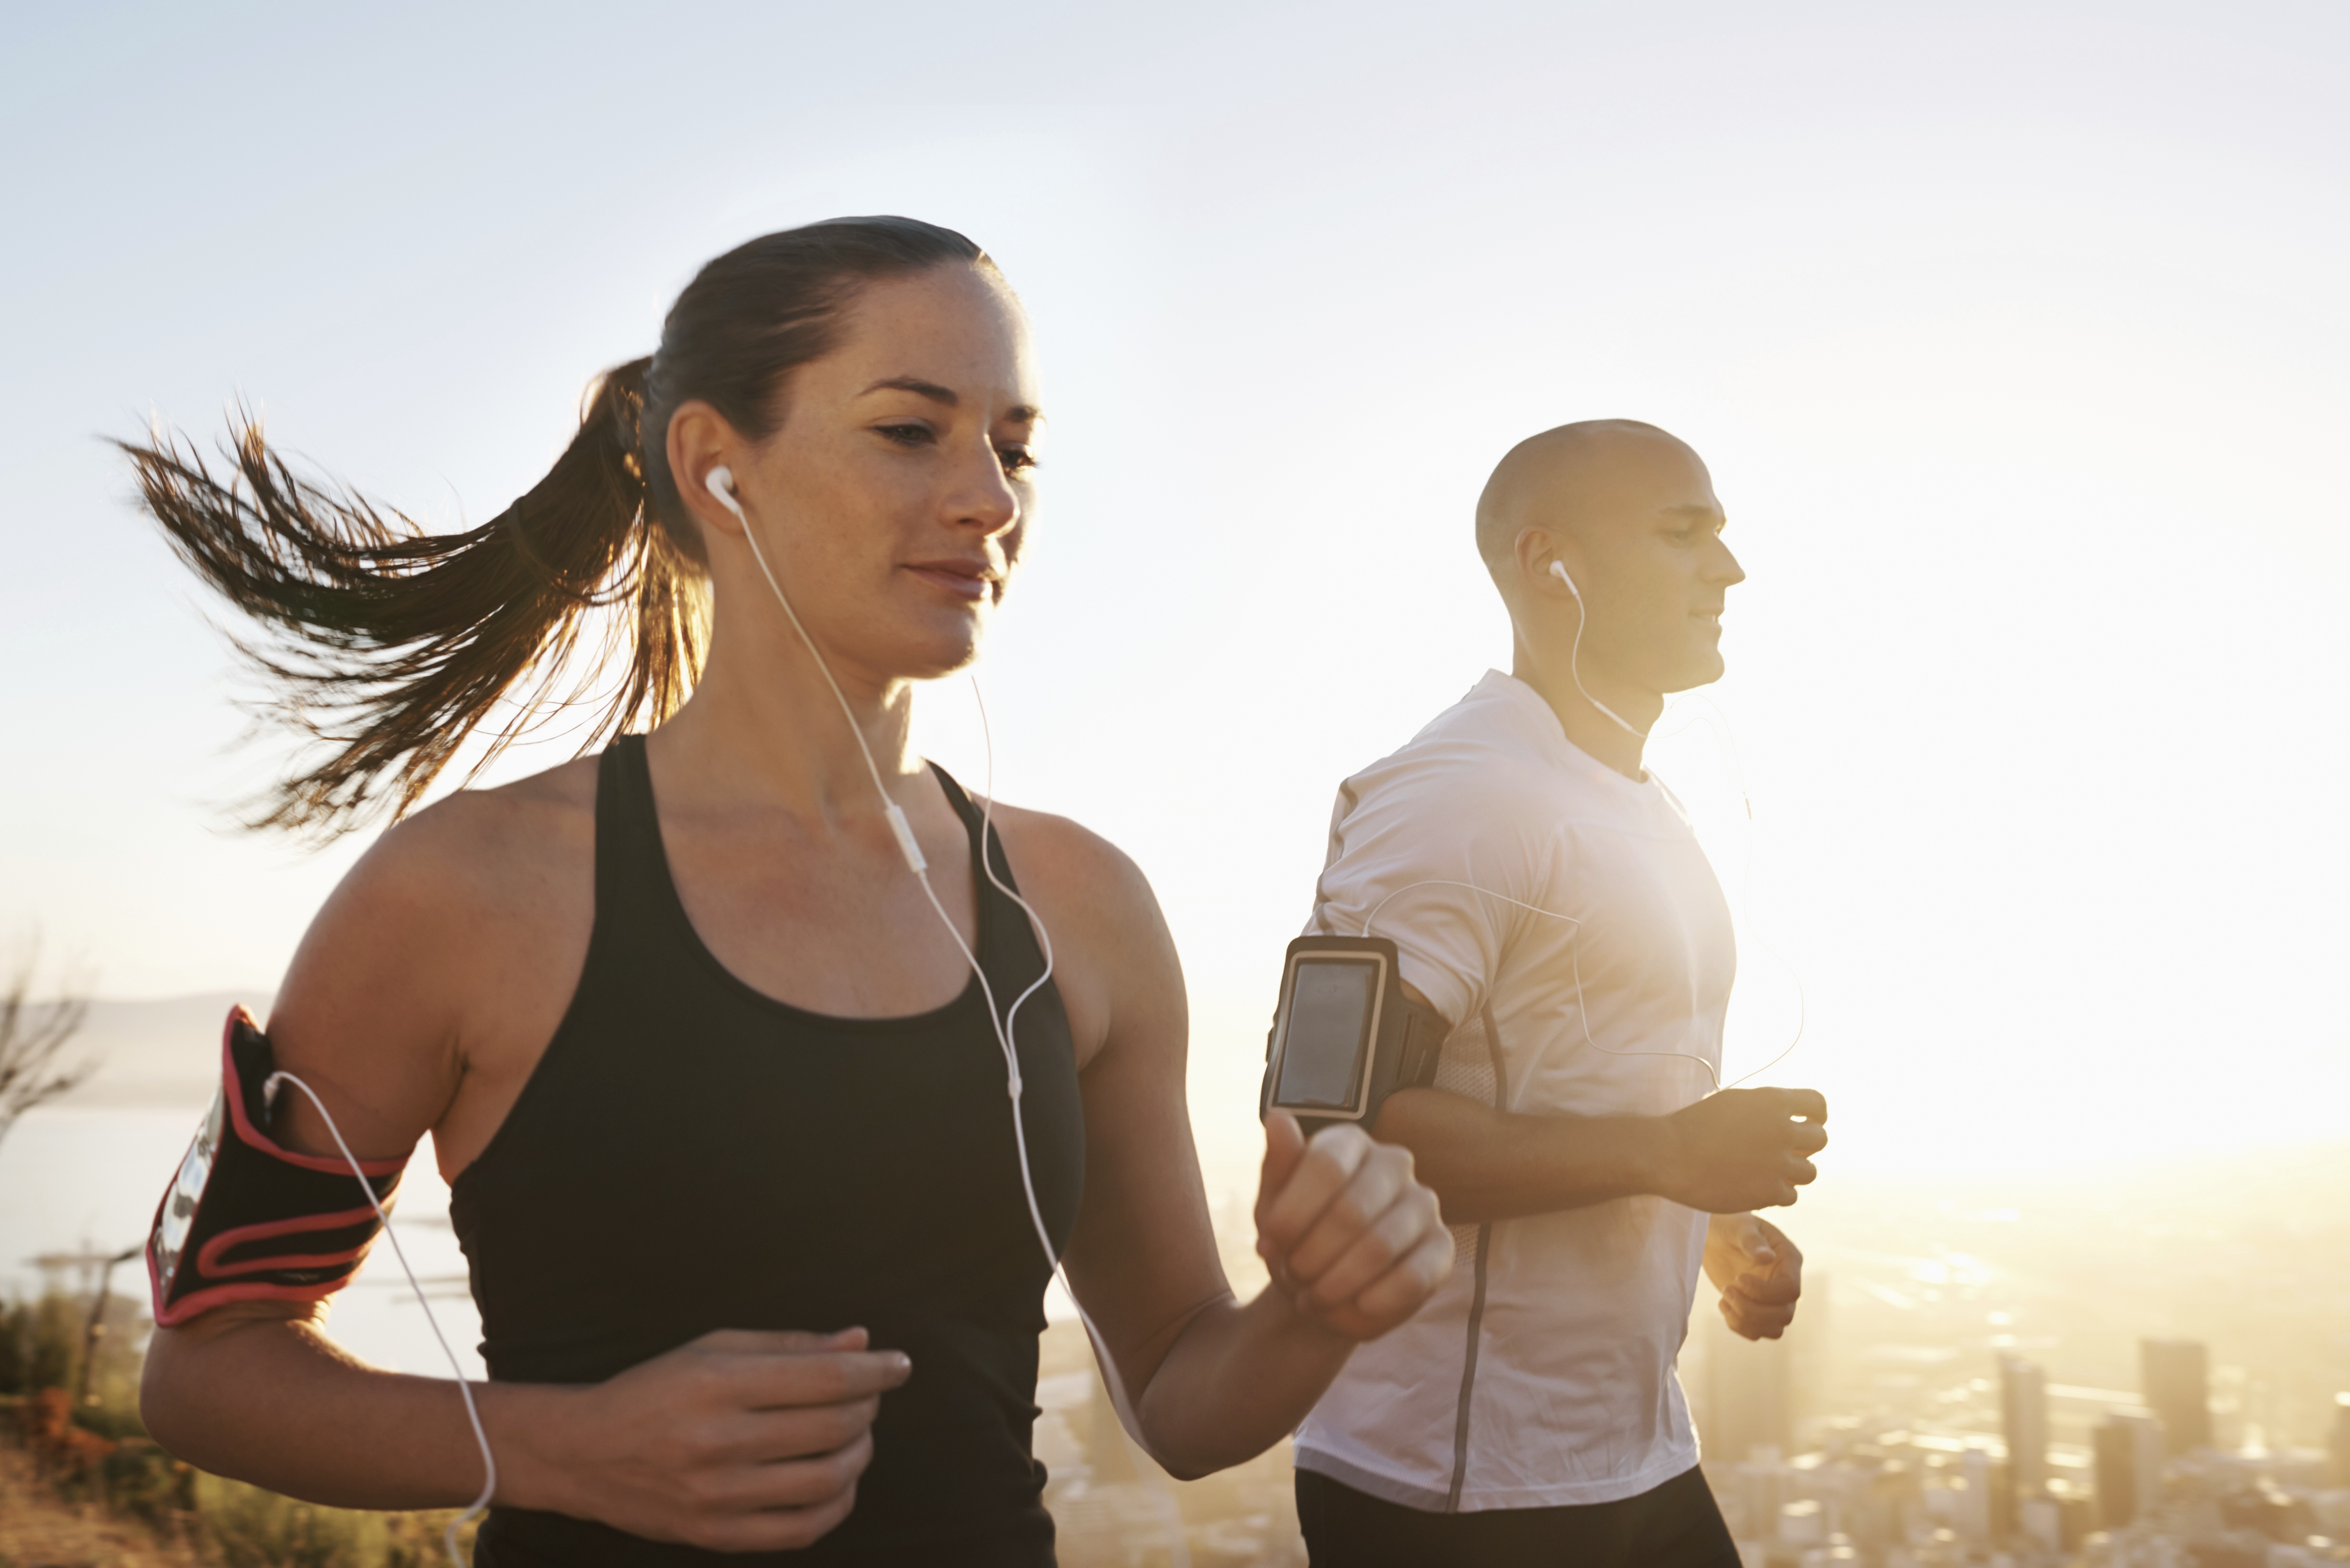 Cropped shot of two young athletes running while listening to music